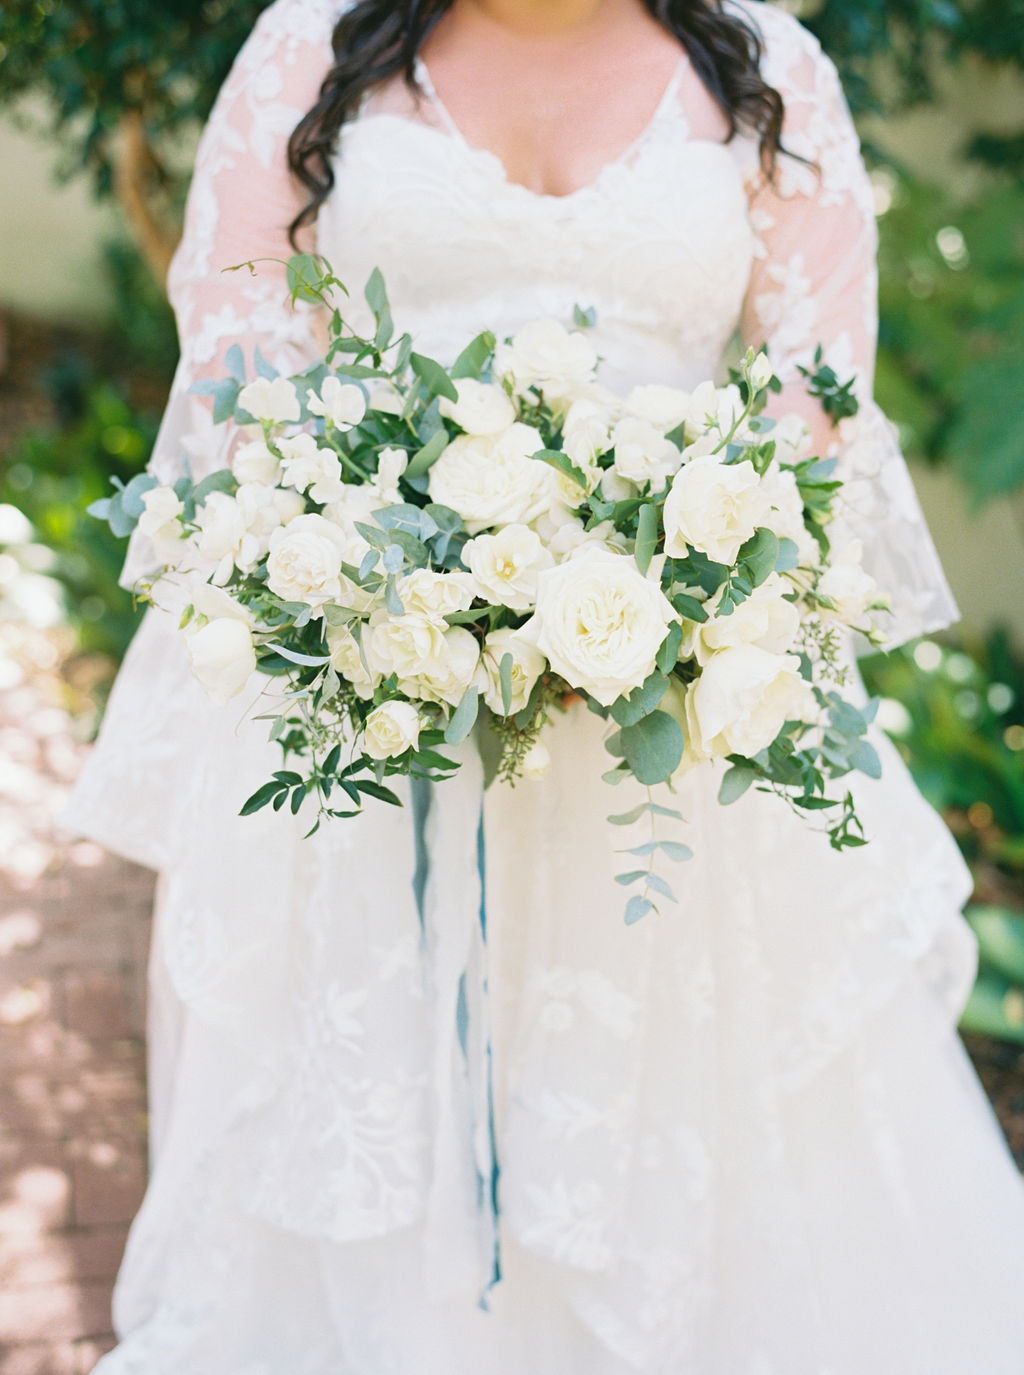 whimsical white garden bouquet.JPG